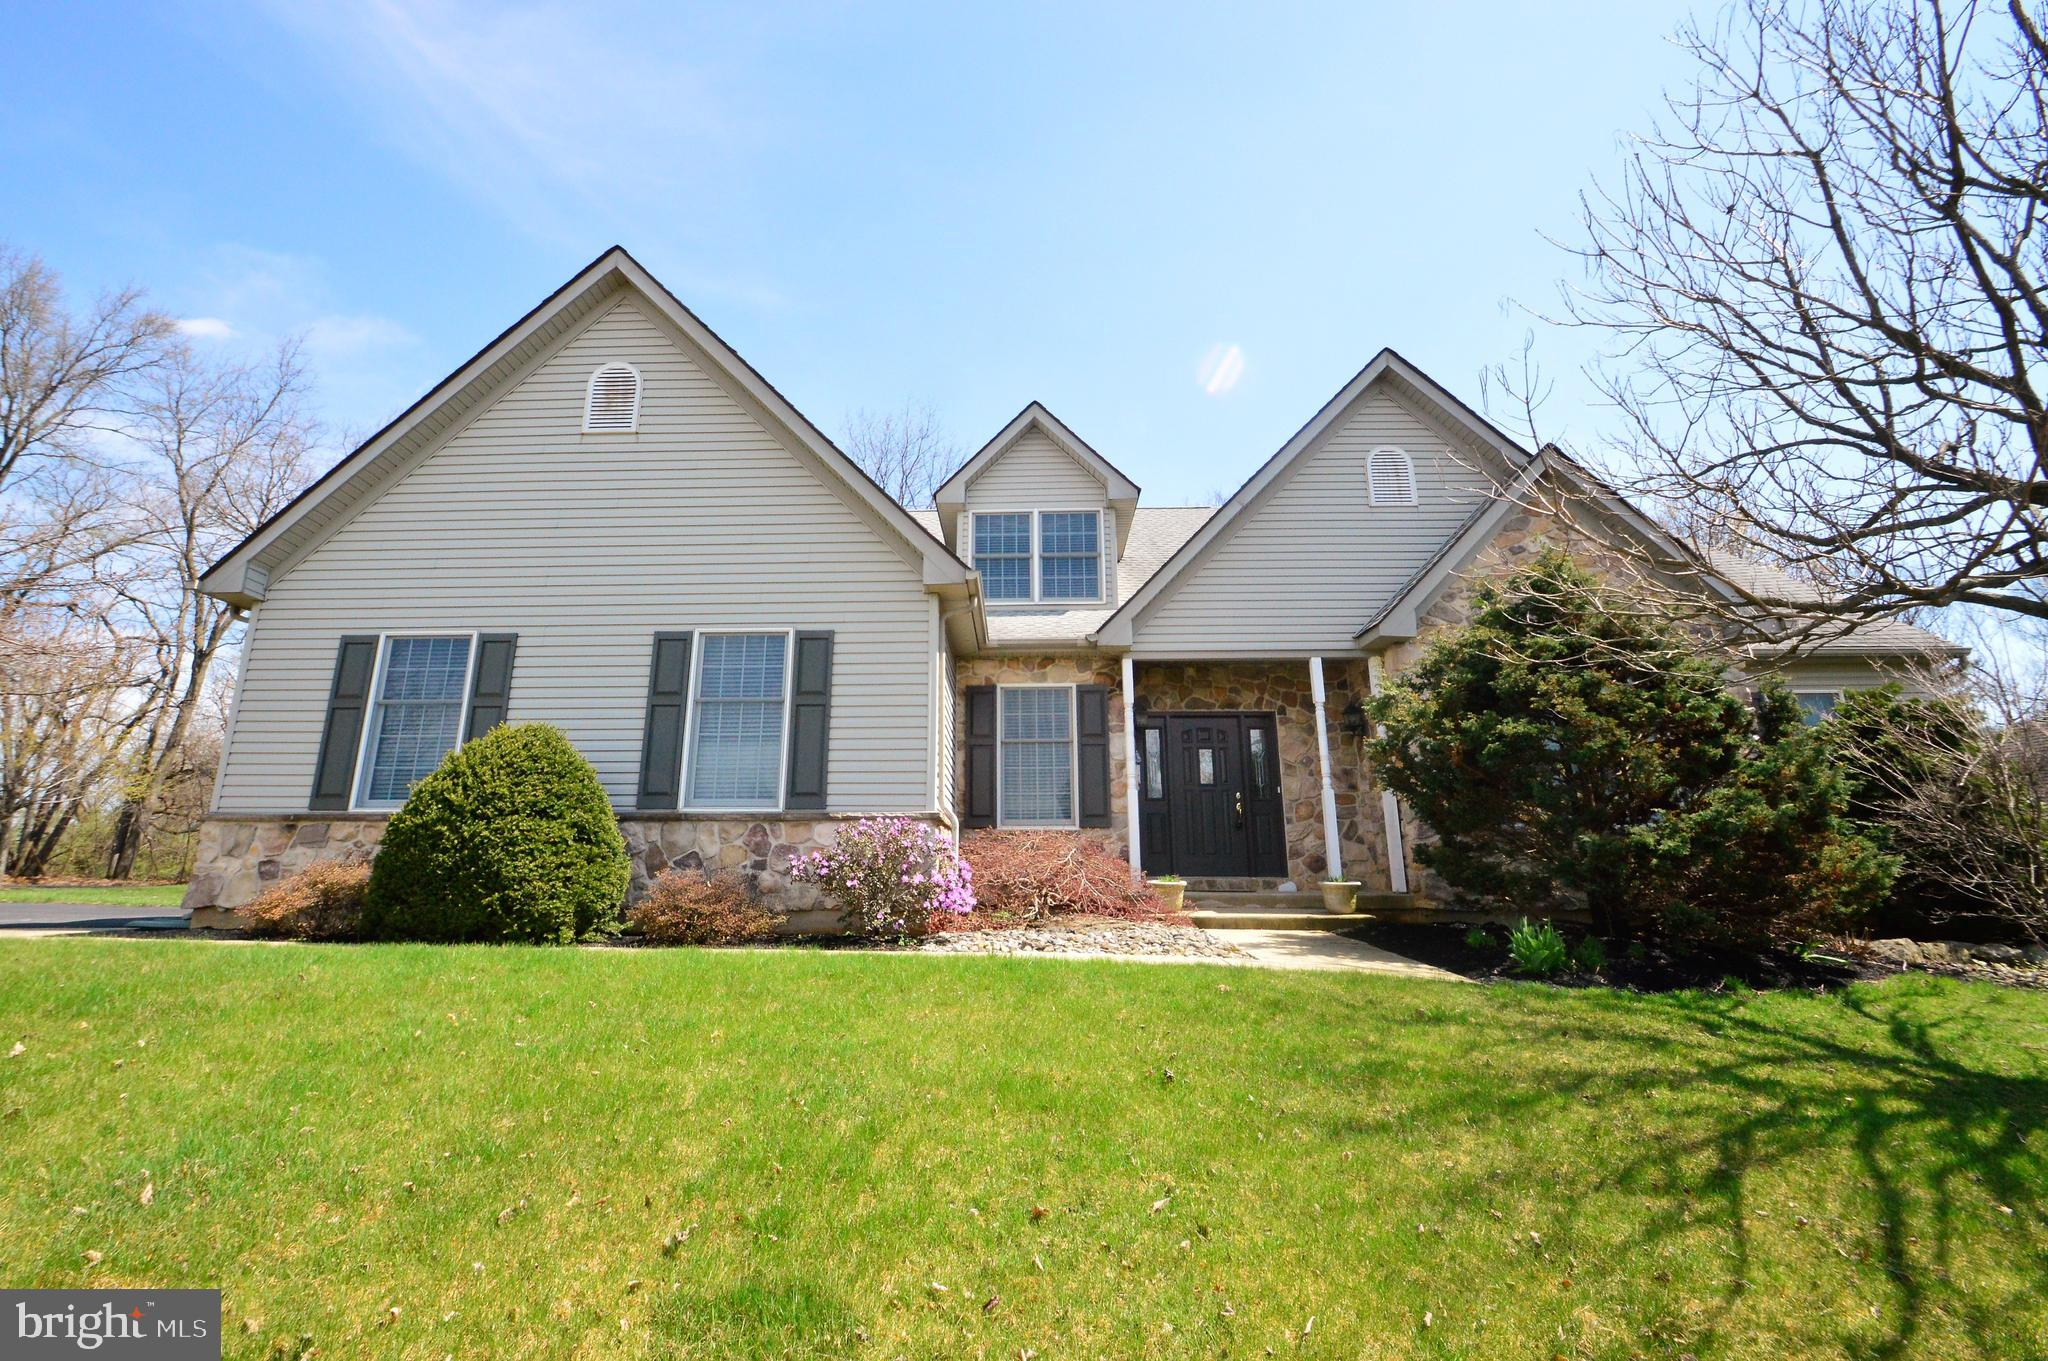 1487 MORNING STAR DRIVE, ALLENTOWN, PA 18106